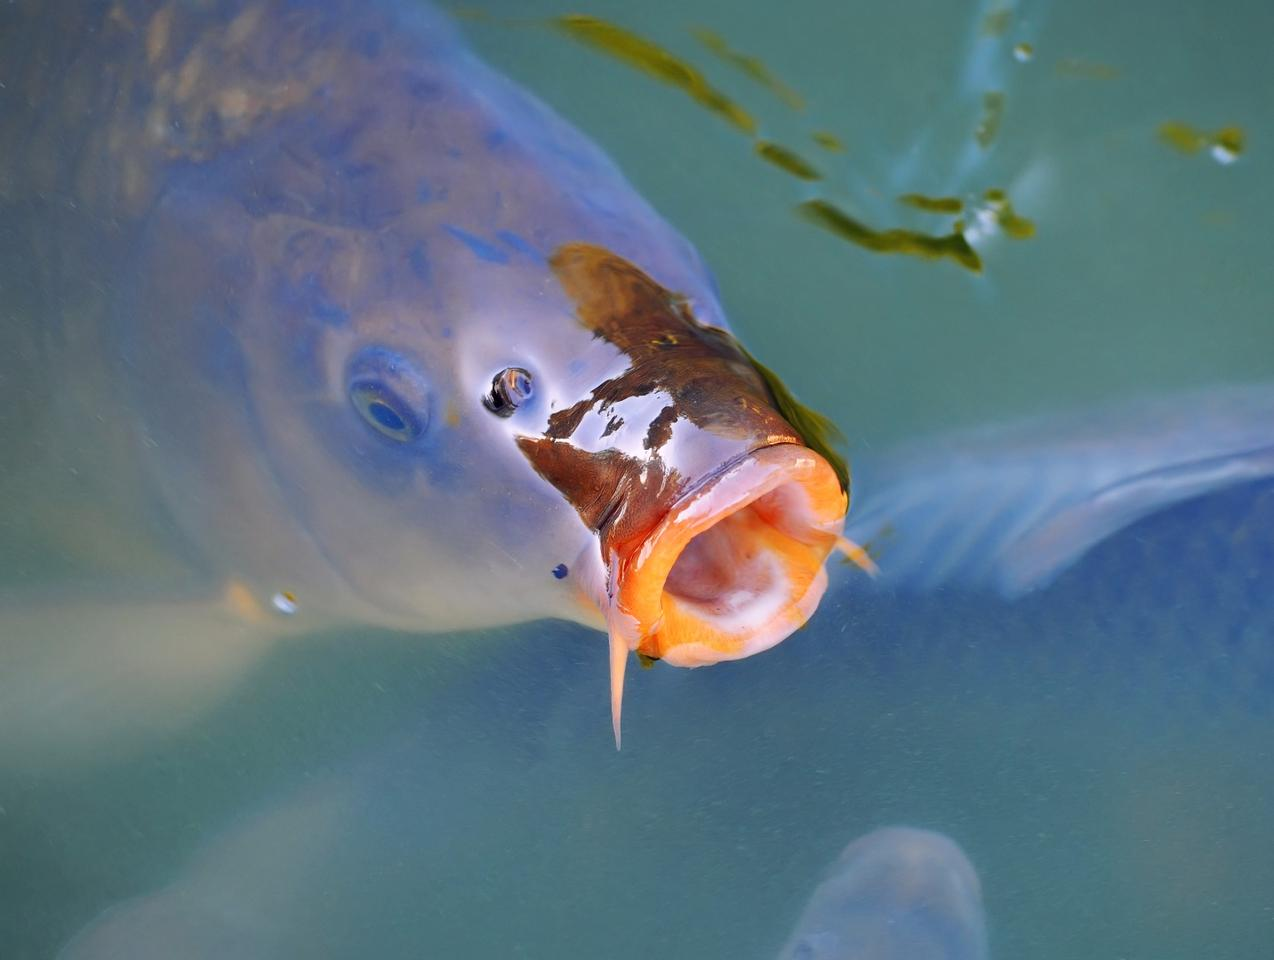 Once the carp are infected with CyHV-3, the virus multiplies over the next seven days or so